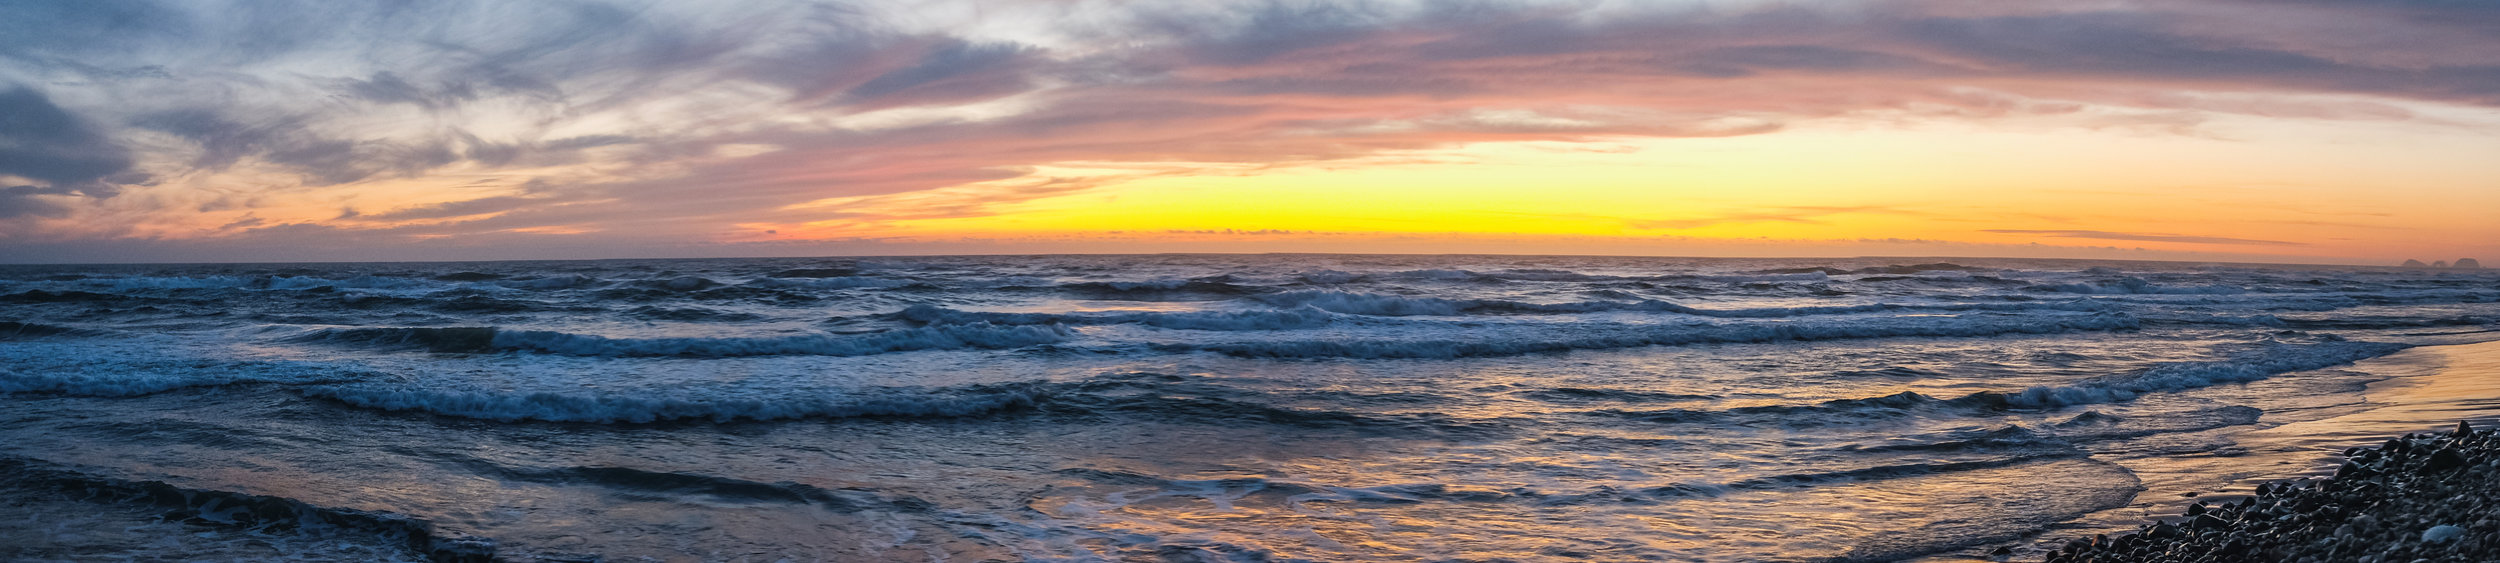 Cape Lookout Sunset From Beach-.jpg